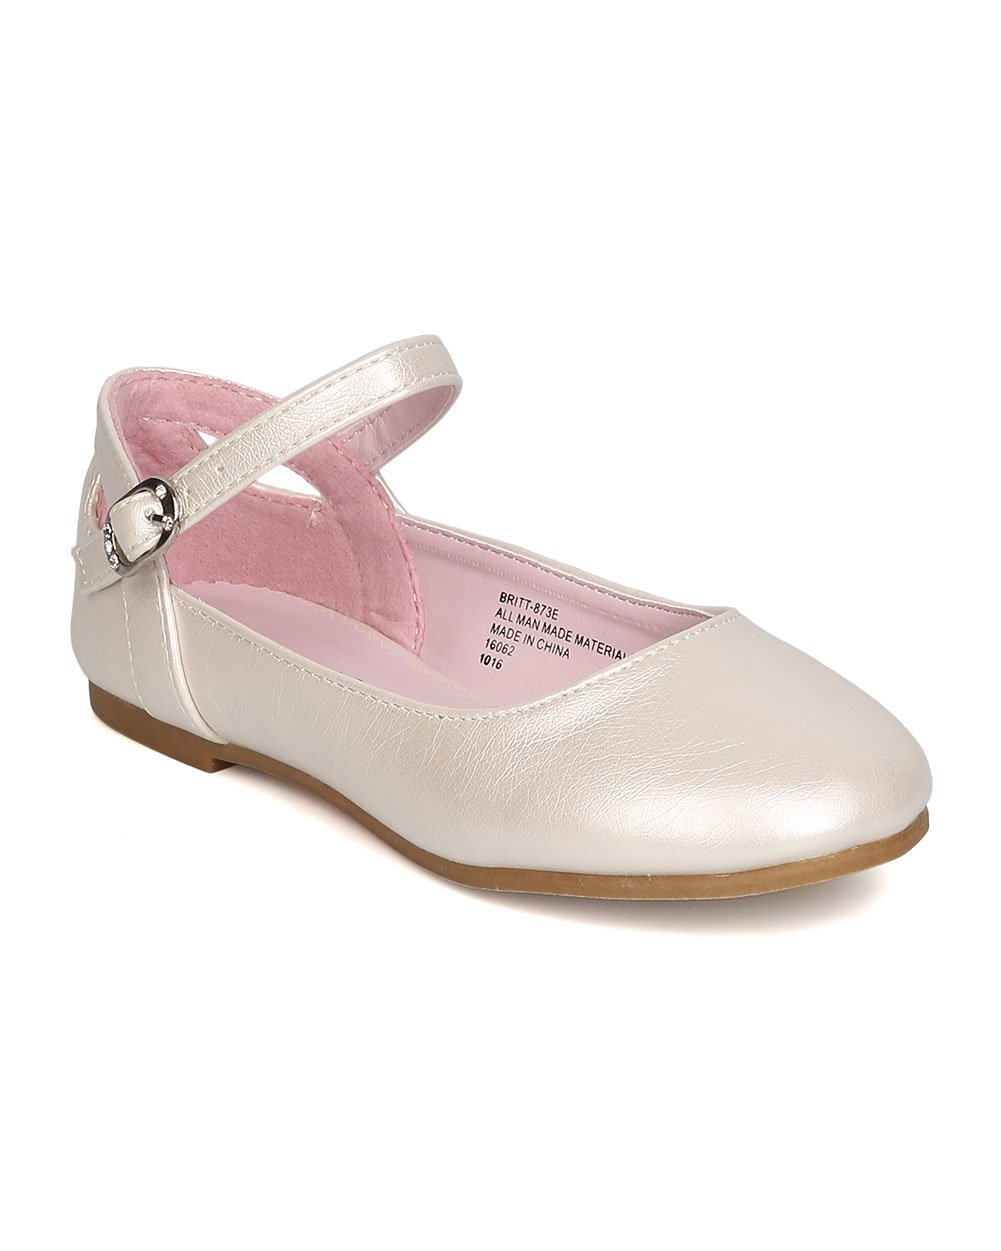 Girls Leatherette Ankle Strap Cut Out Ballet Flat GB42 - Ivory (Size: Little Kid 1)